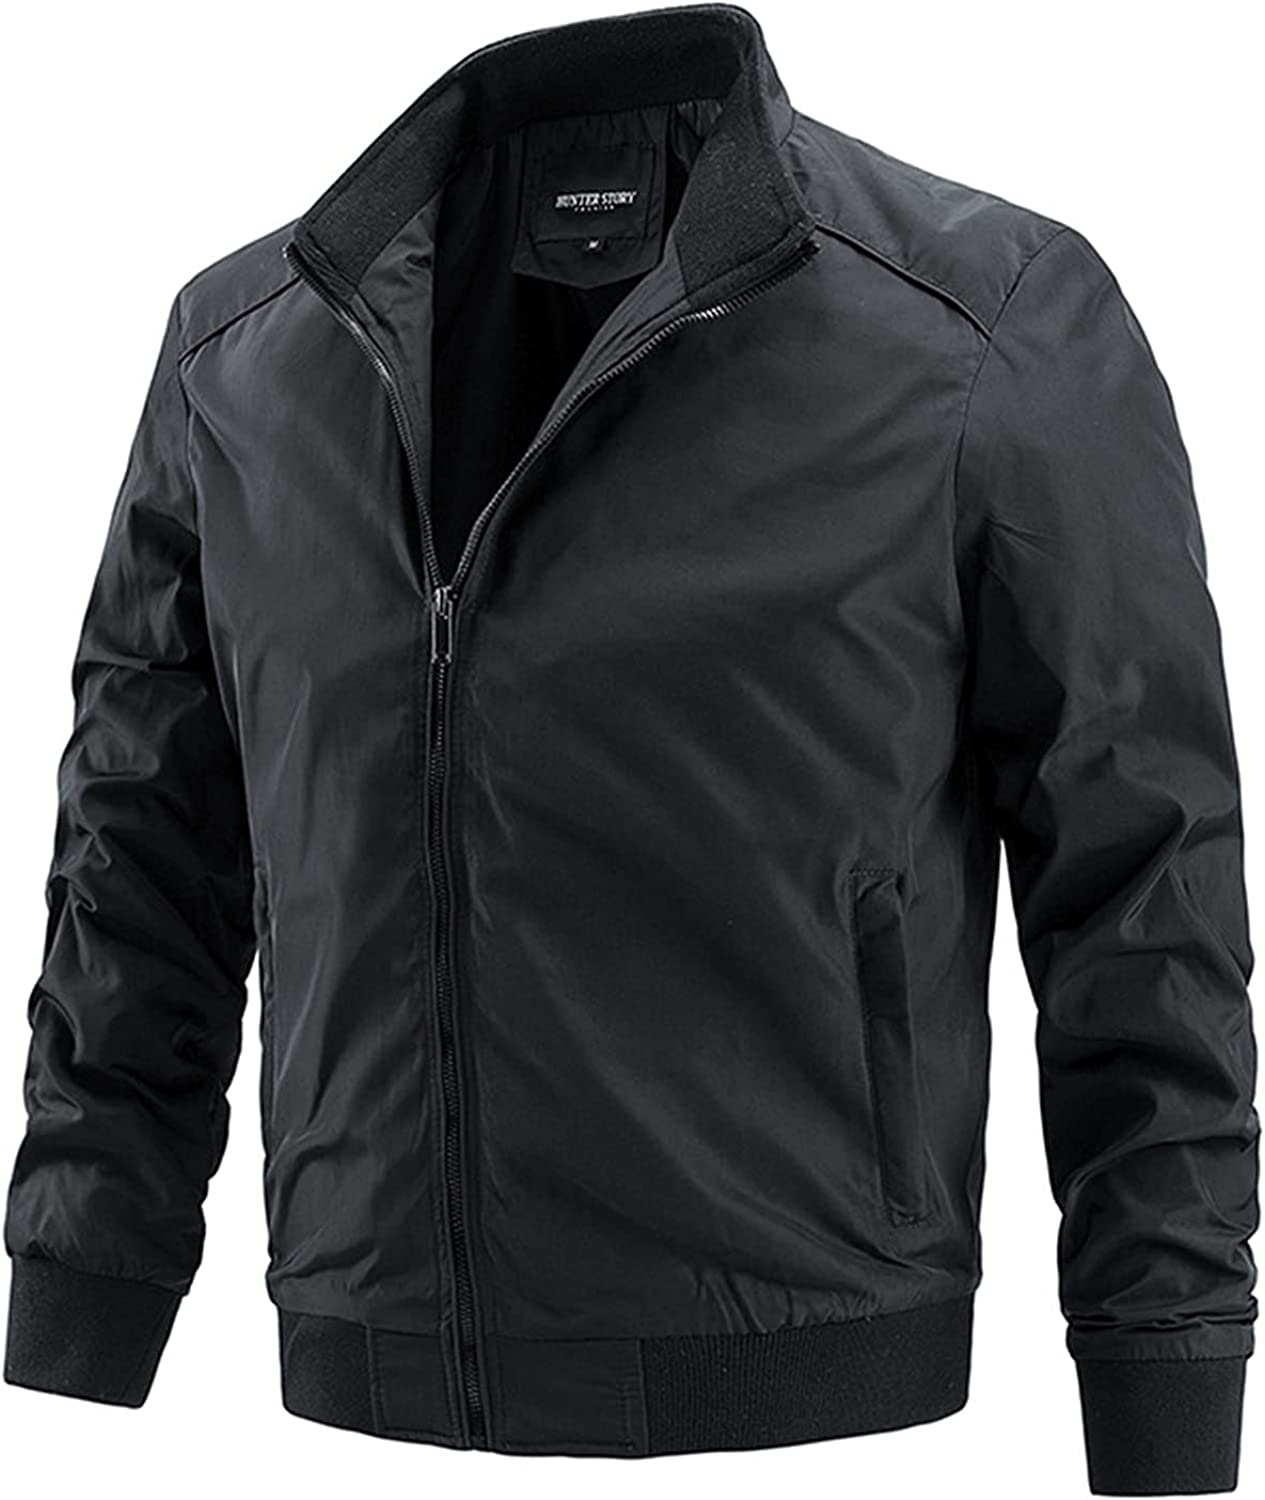 Men's Thin Jackets,Windproof Casual Jacket Outwear,Fashion Simple and Versatile